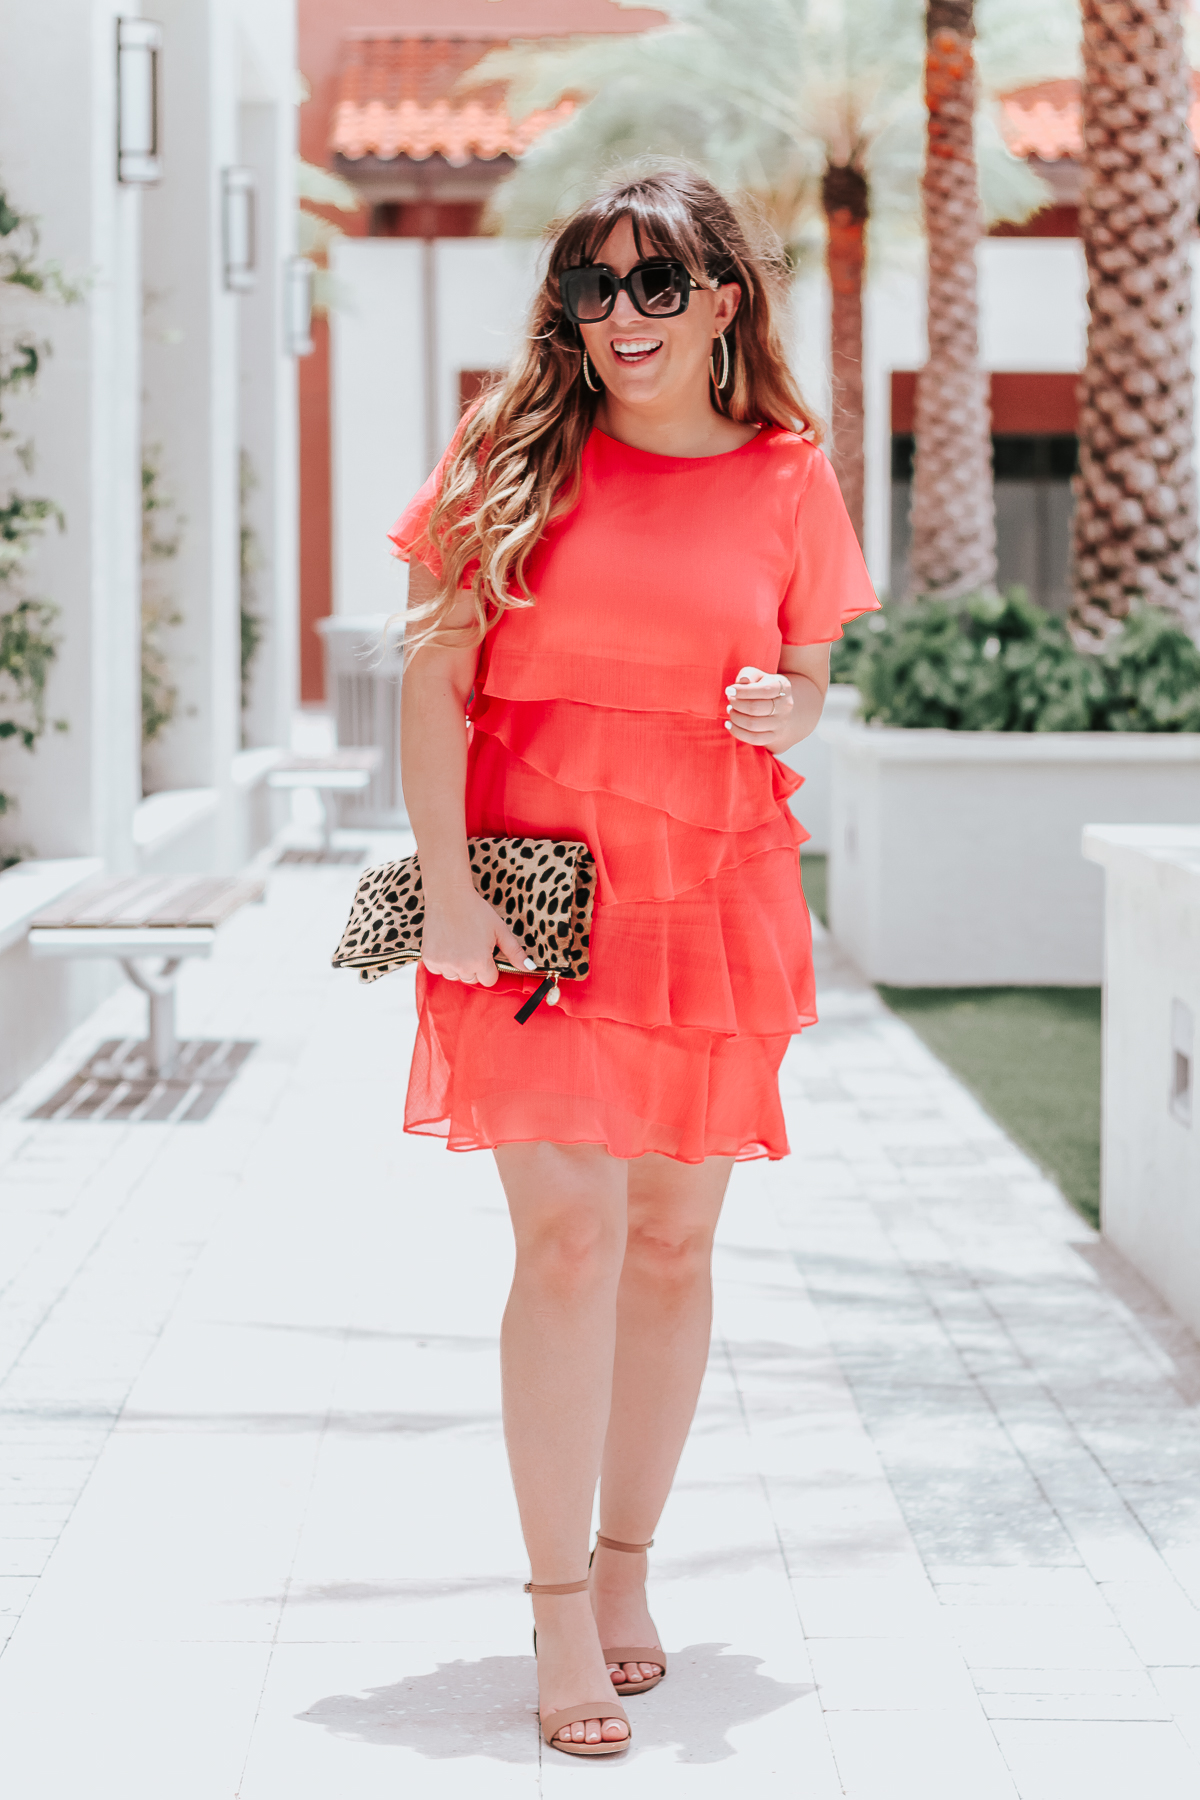 Coral dress: bold coral ruffle minidress for summer